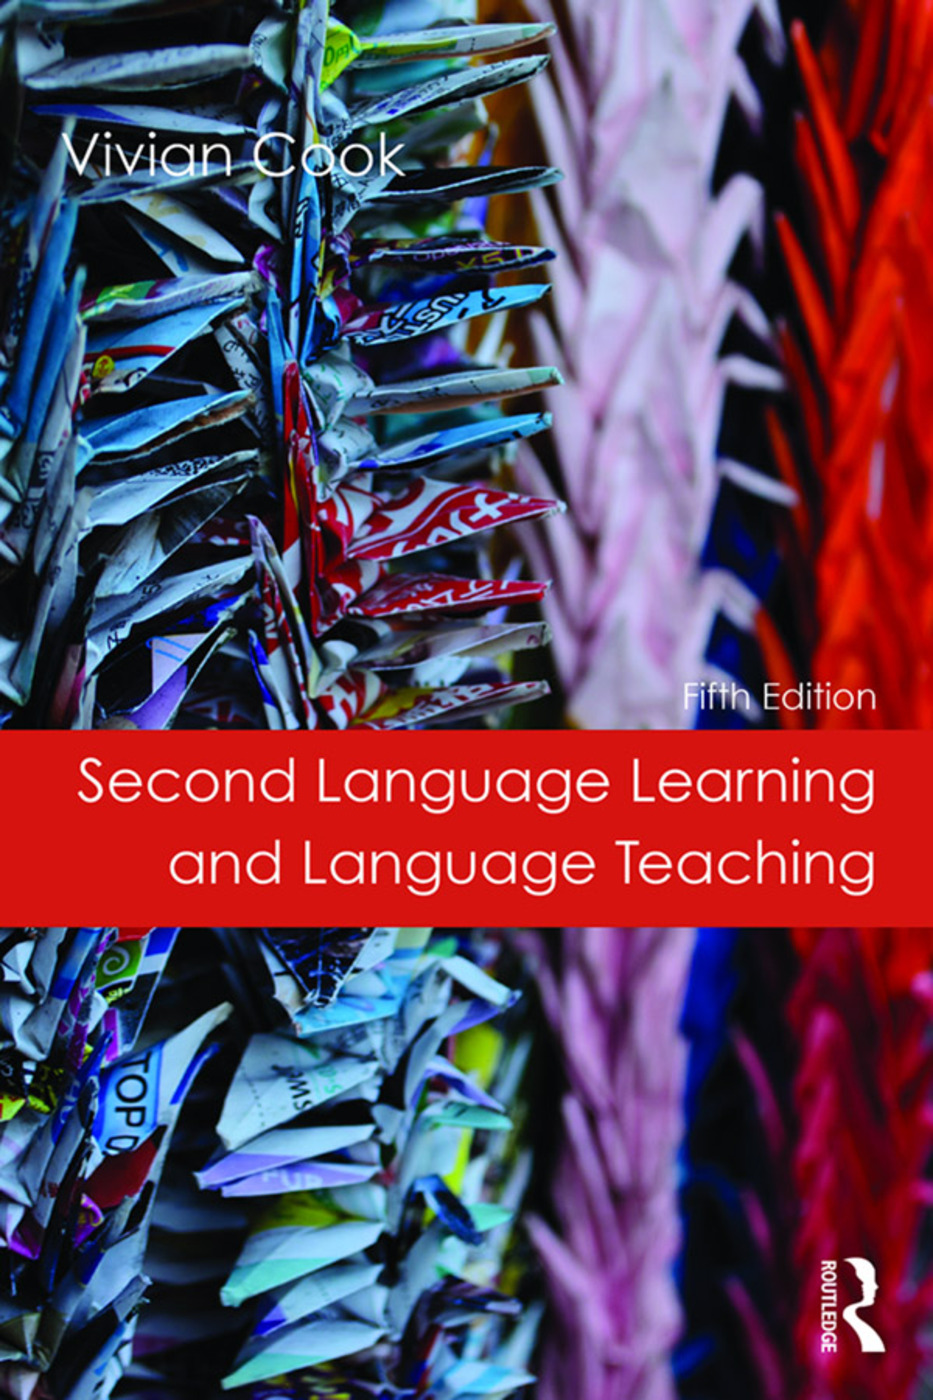 Second Language Learning and Language Teaching: Fifth Edition book cover